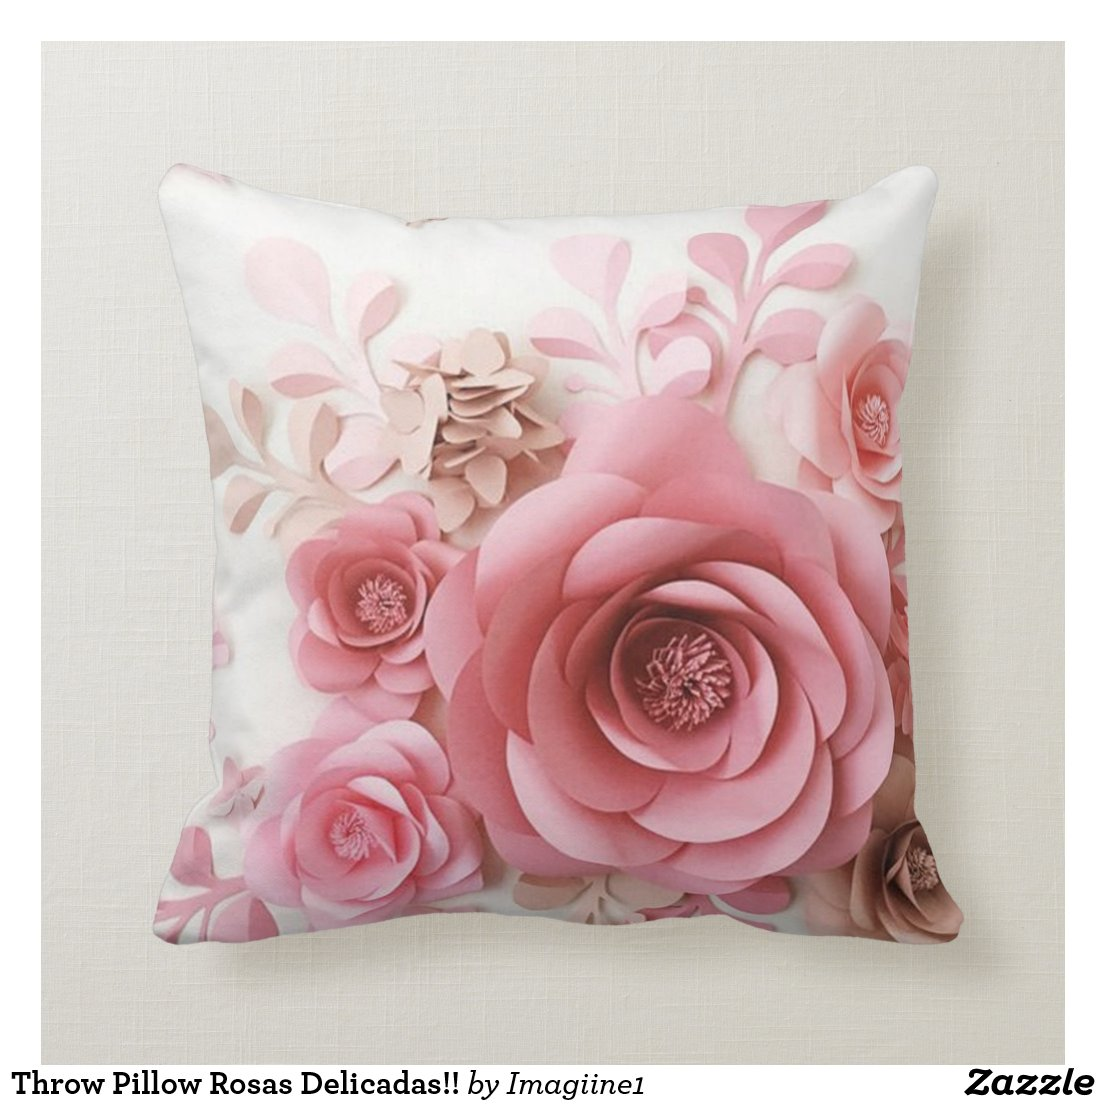 Throw Pillow Rosas Delicadas!!